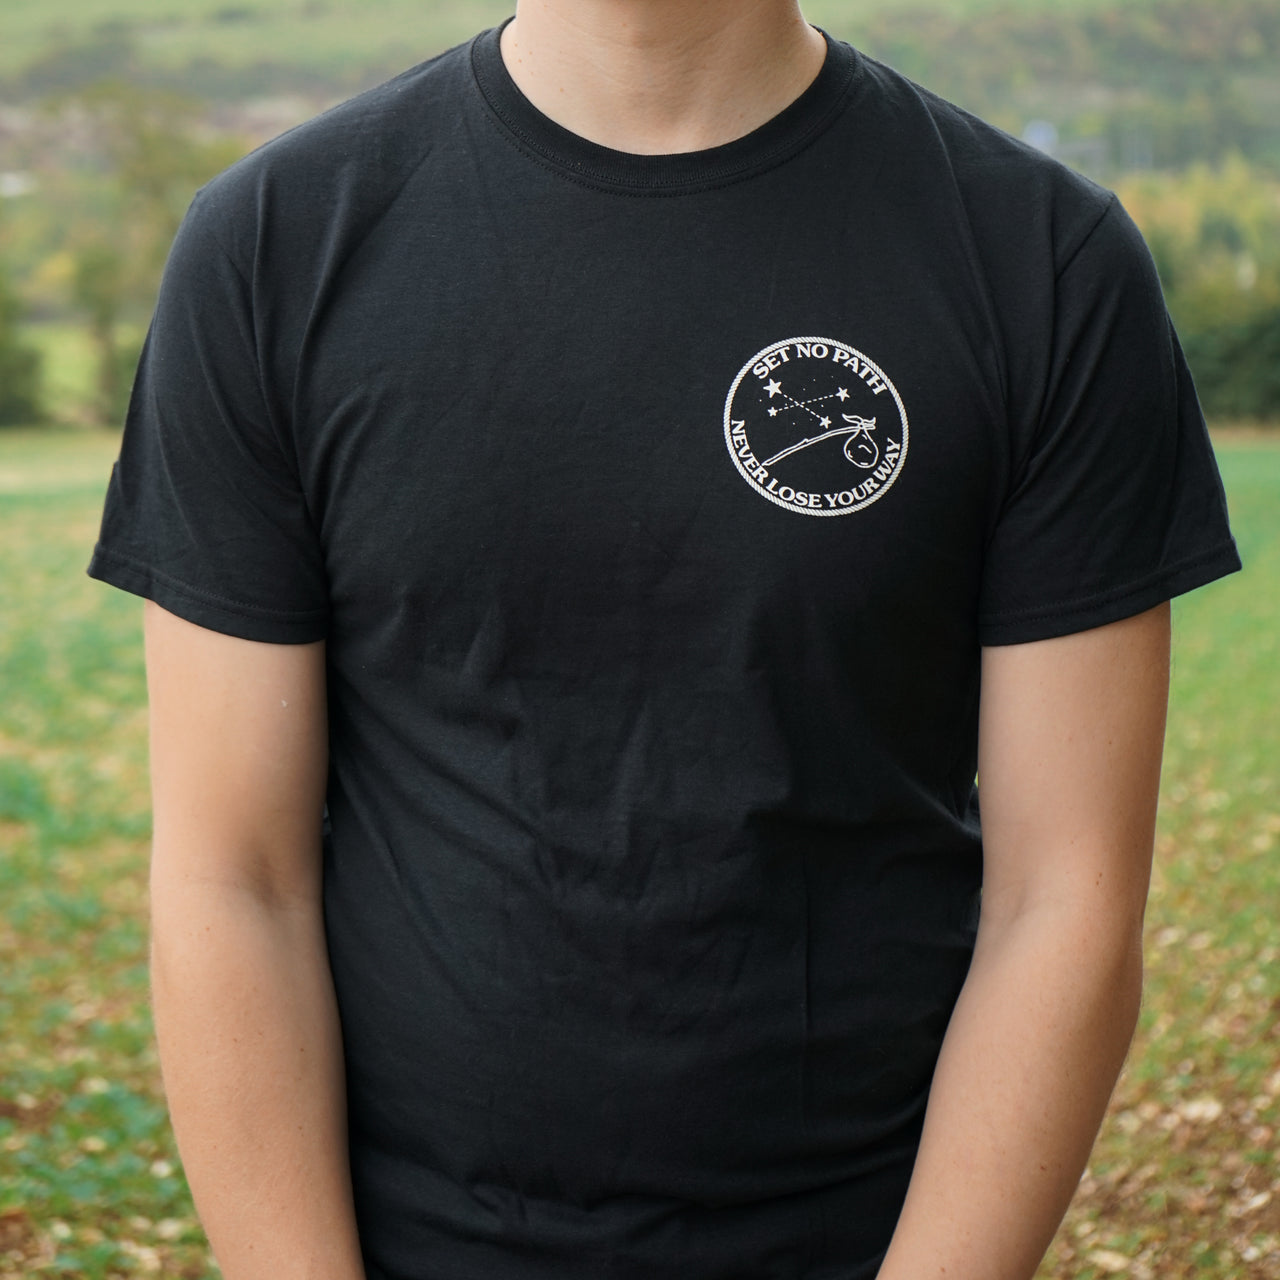 Explorer's Press 'Set No Path' T-Shirt